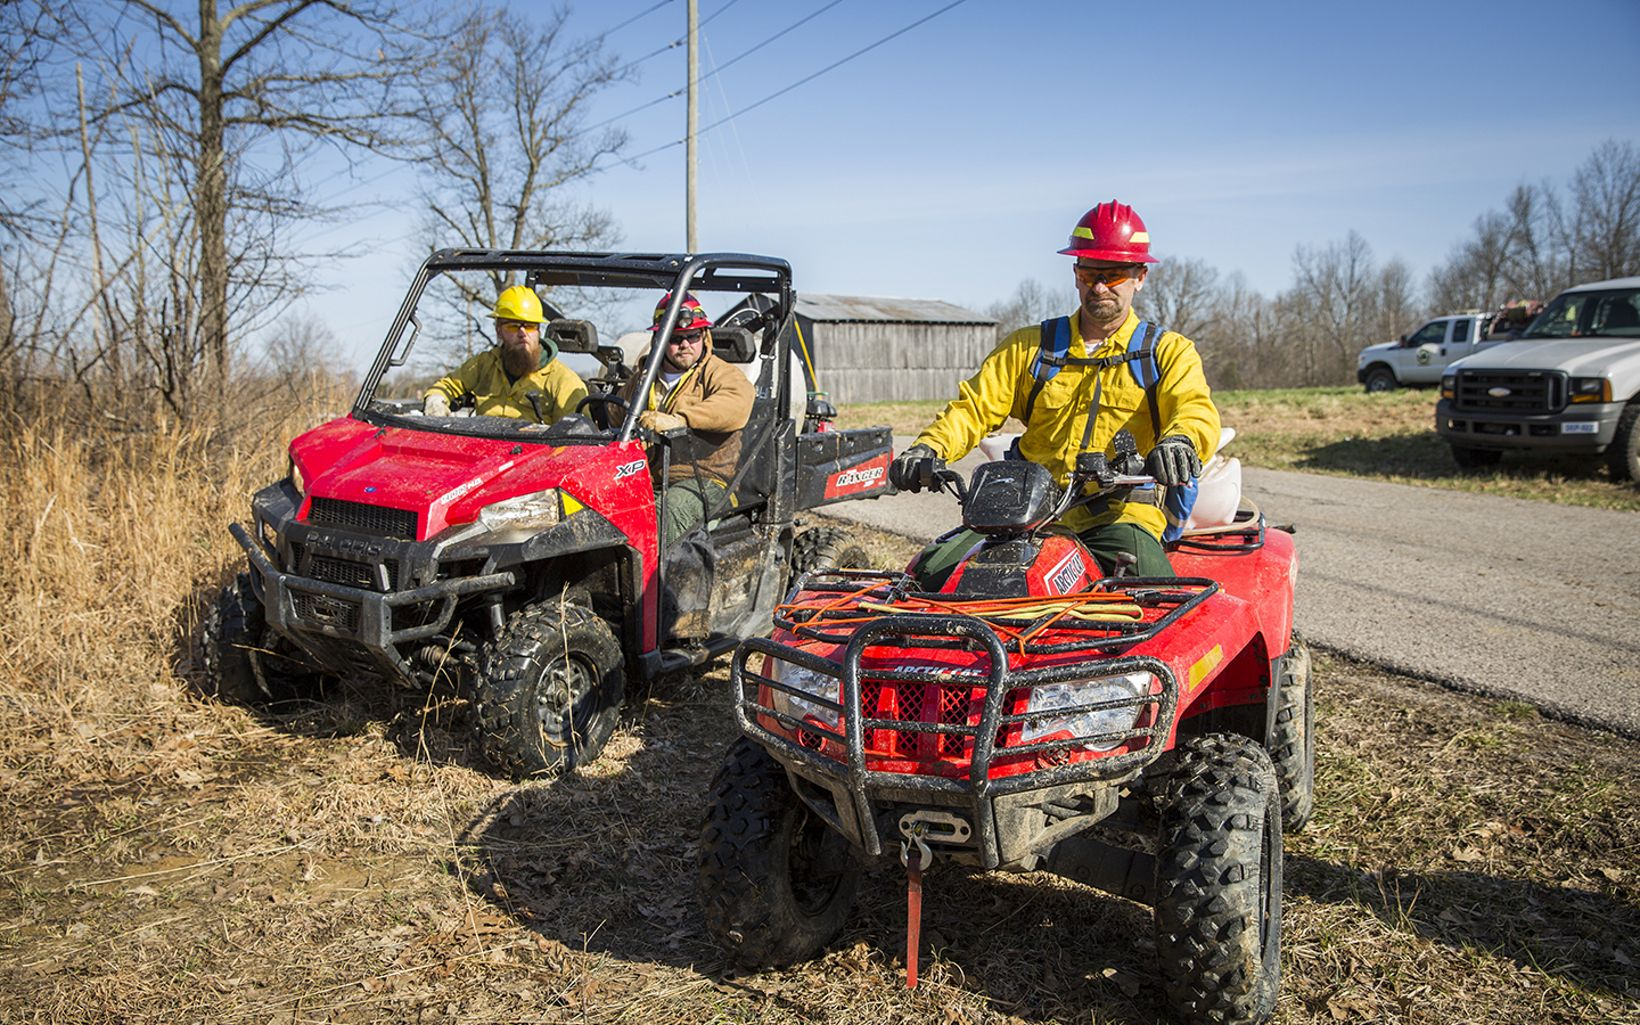 Fire personnel sit on ATVs and UTVs before a prescribed fire.